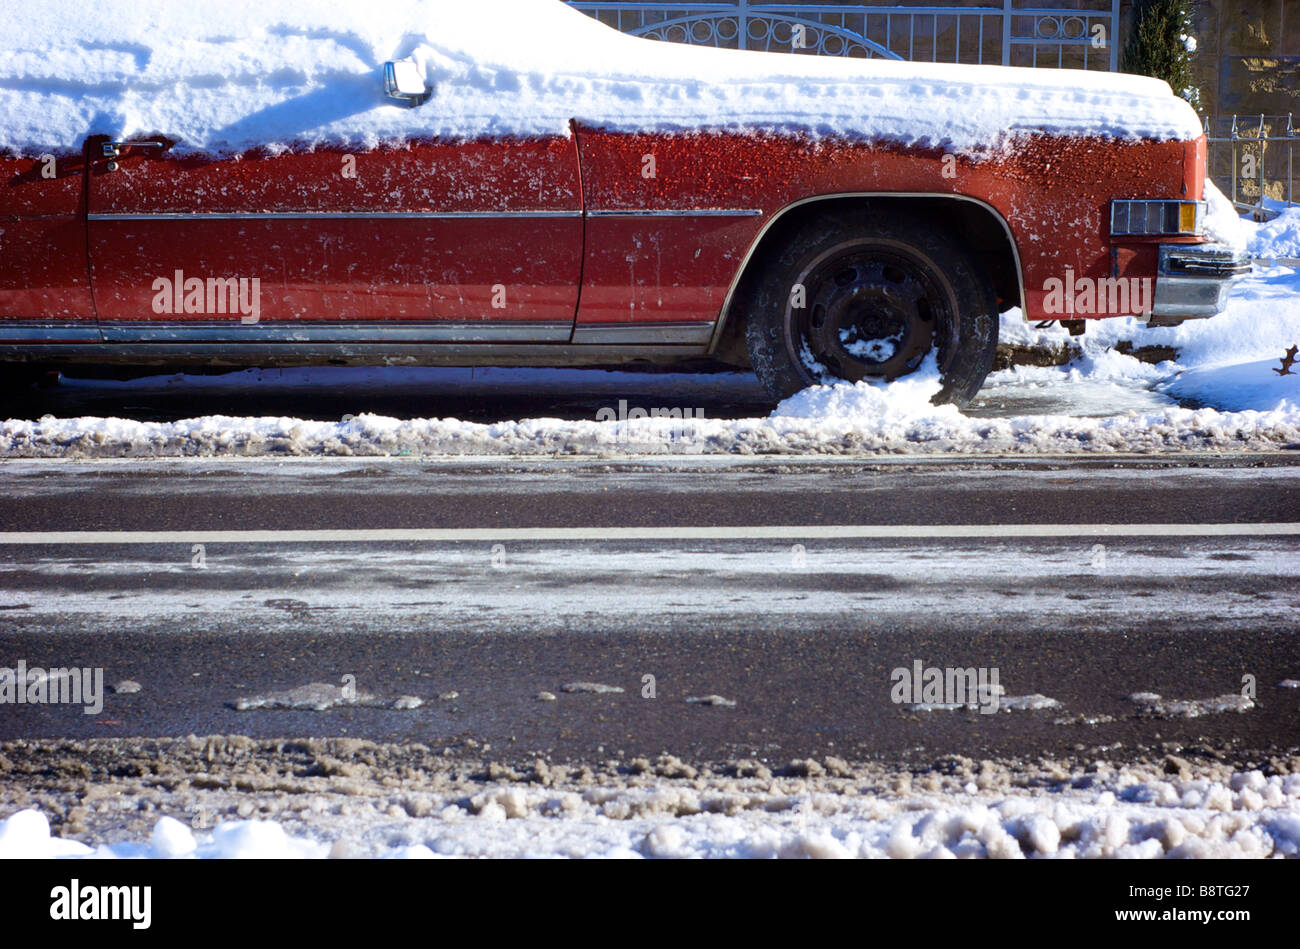 Old Cadillac Buried in Snow on a Cold WInter Day Stock Photo